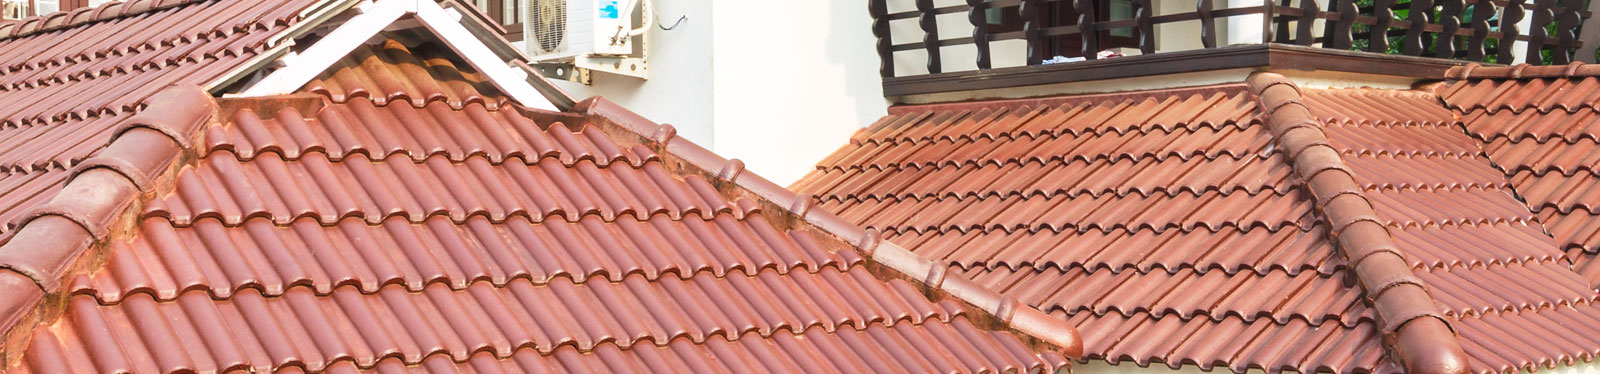 Coupler Detail On The Roof : Pionnier roofing solutions roof fittings